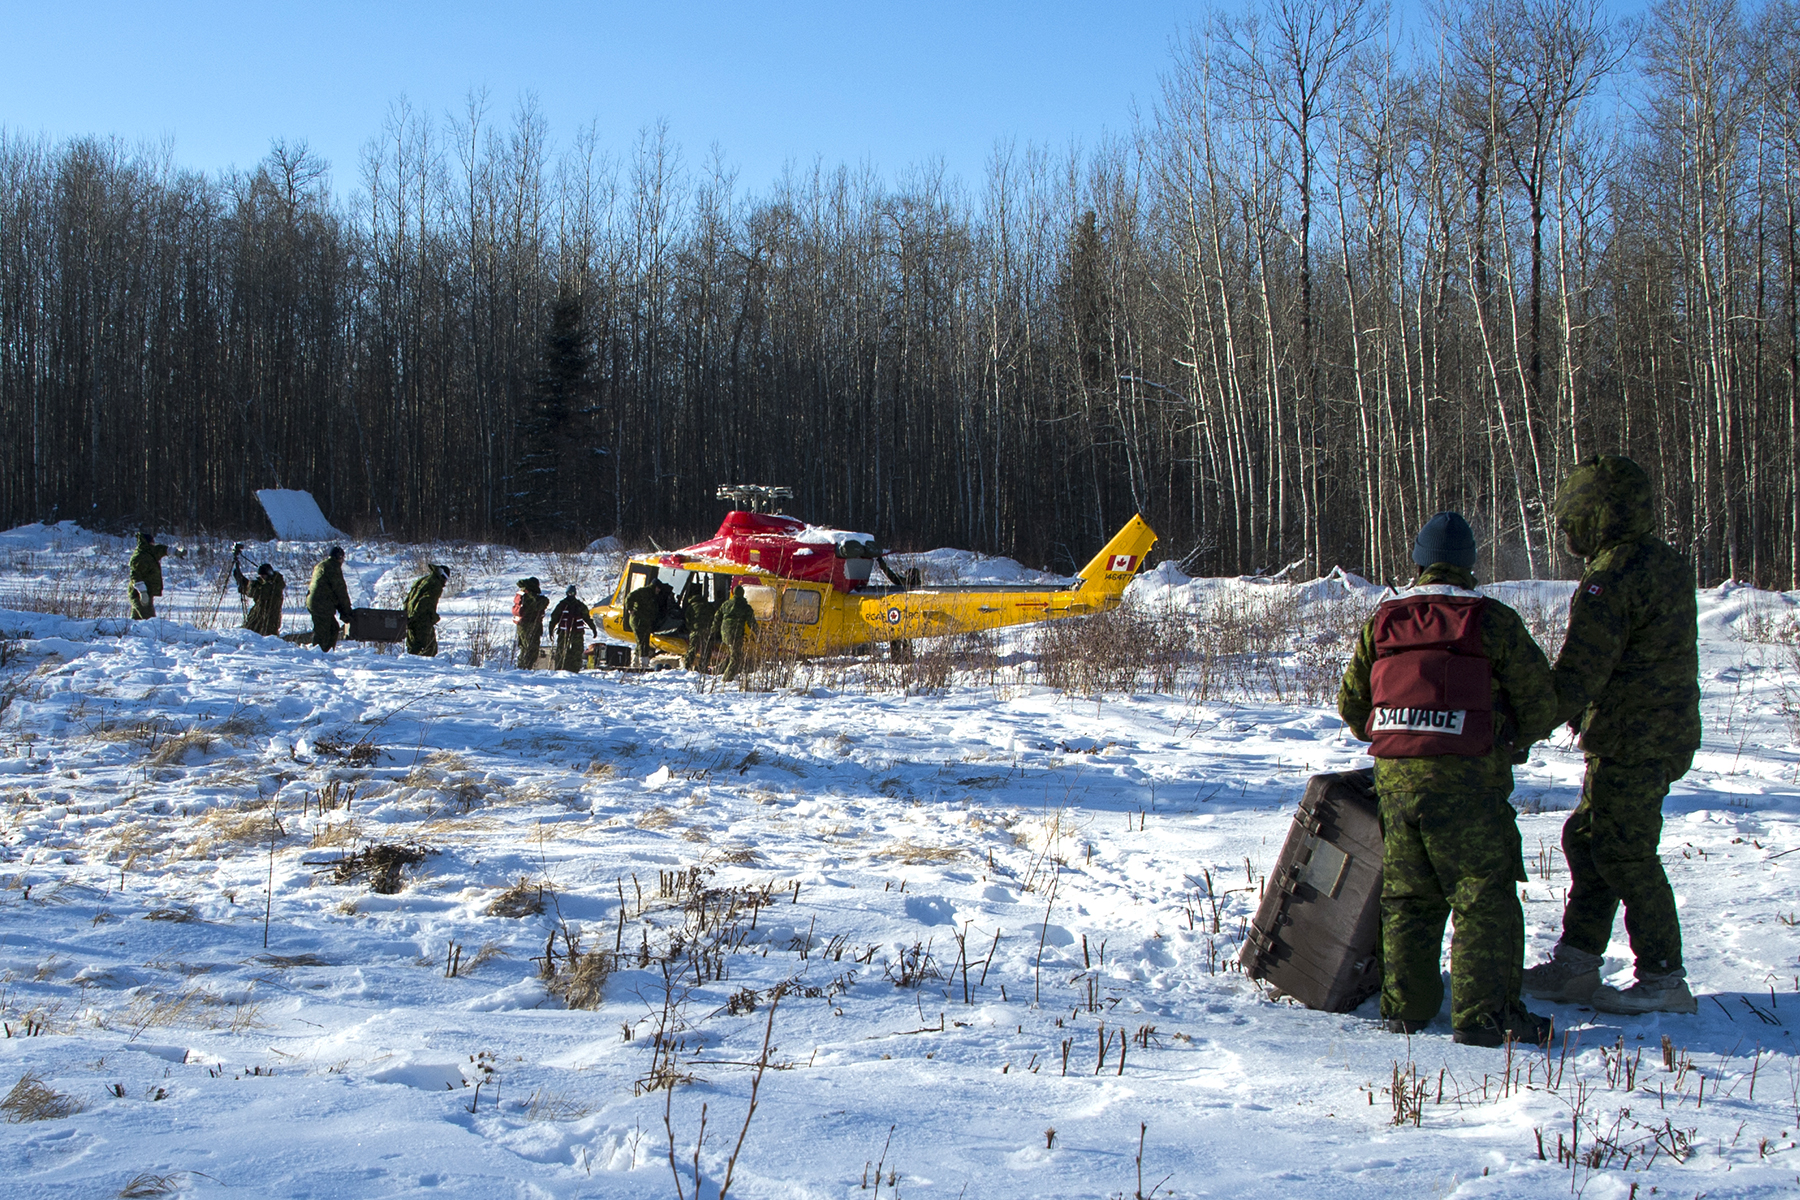 Members of 4 Wing Cold Lake's recovery and salvage team remove parts from a CH-146 Griffon that had an emergency landing in the Cold Lake Air Weapons Range in December 2018. They were preparing the Griffon for lift and recovery back to 4 Wing by a CH-147F Chinook helicopter from 450 Tactical Helicopter Squadron on January 15, 2019. PHOTO: Master Corporal Raulley Parks, AE09-2019-0011-0011